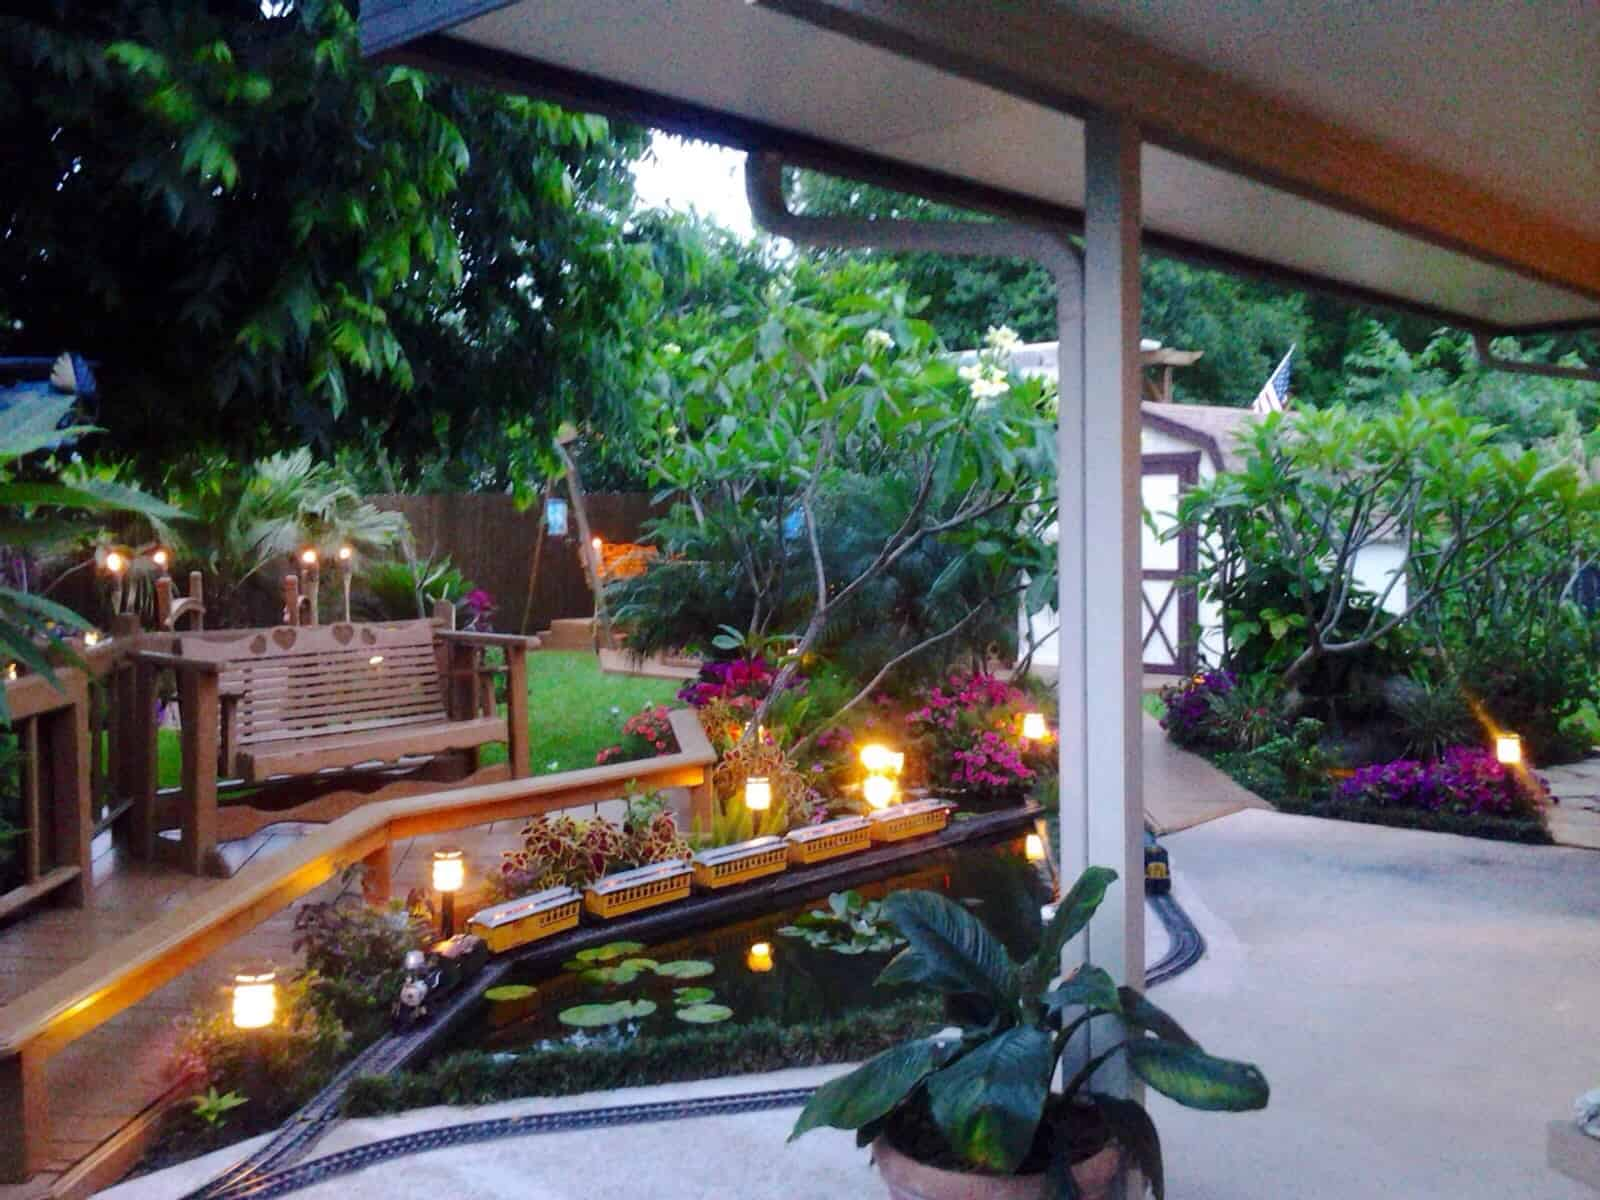 35 Sublime Koi Pond Designs and Water Garden Ideas for ... on Backyard Koi Pond Designs  id=57827